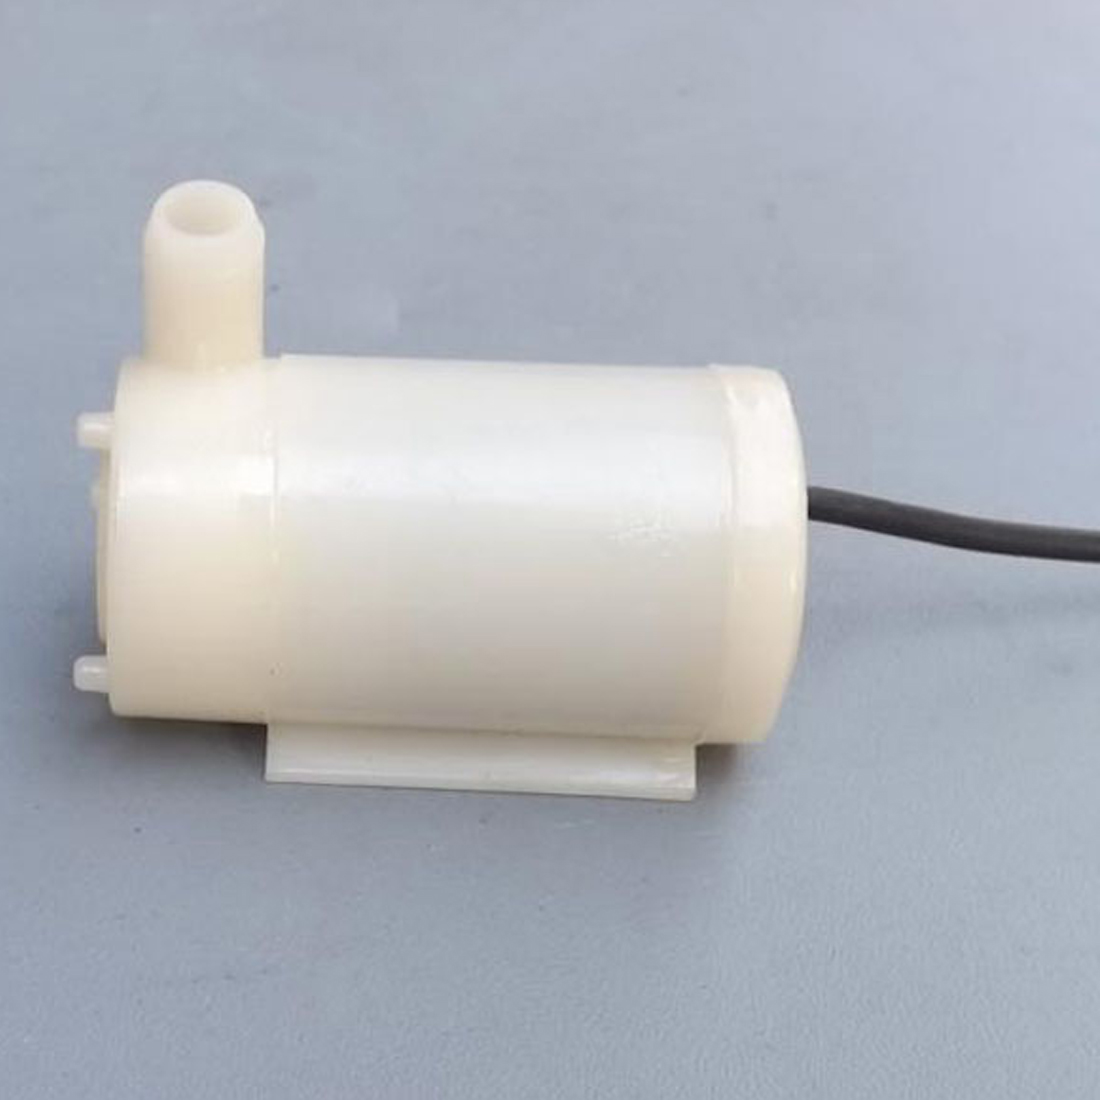 Water Pump Mini Micro Submersible DC 3-5V Low Noise Brushless Motor Pump120L/H